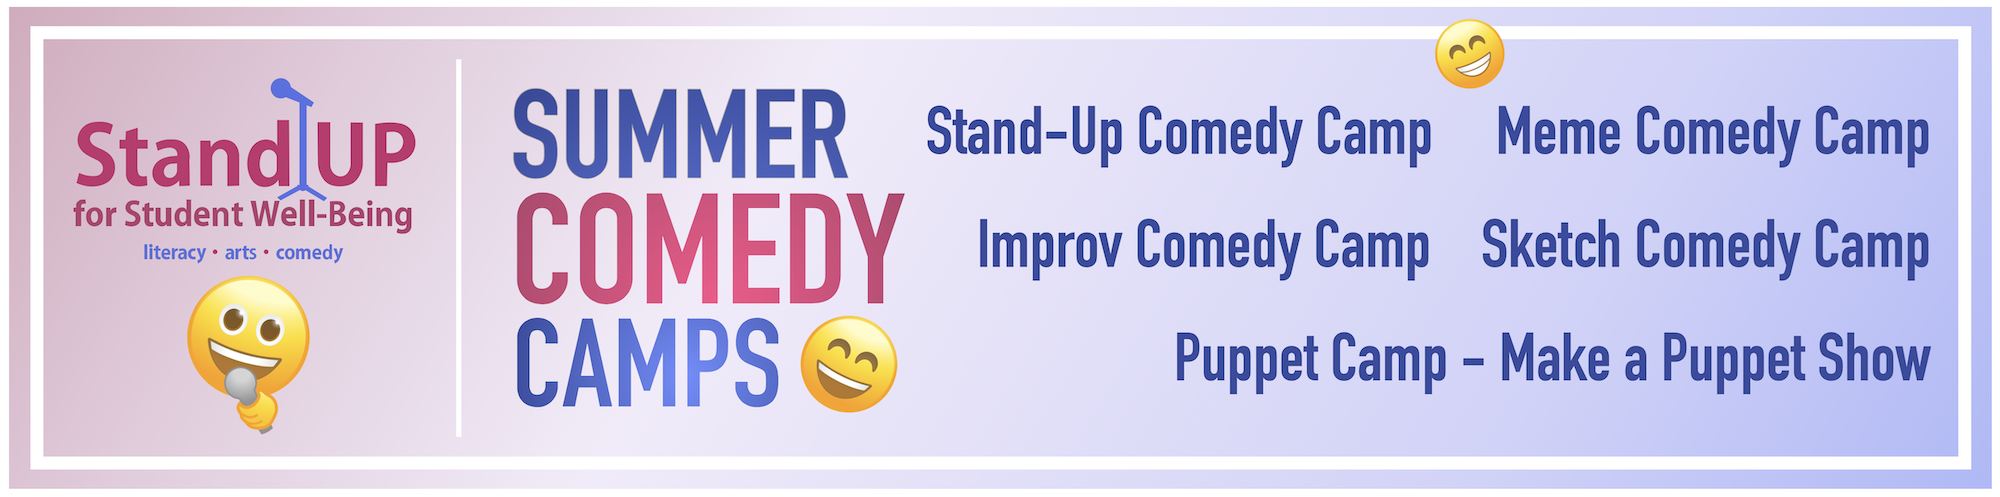 Summer Comedy Camps